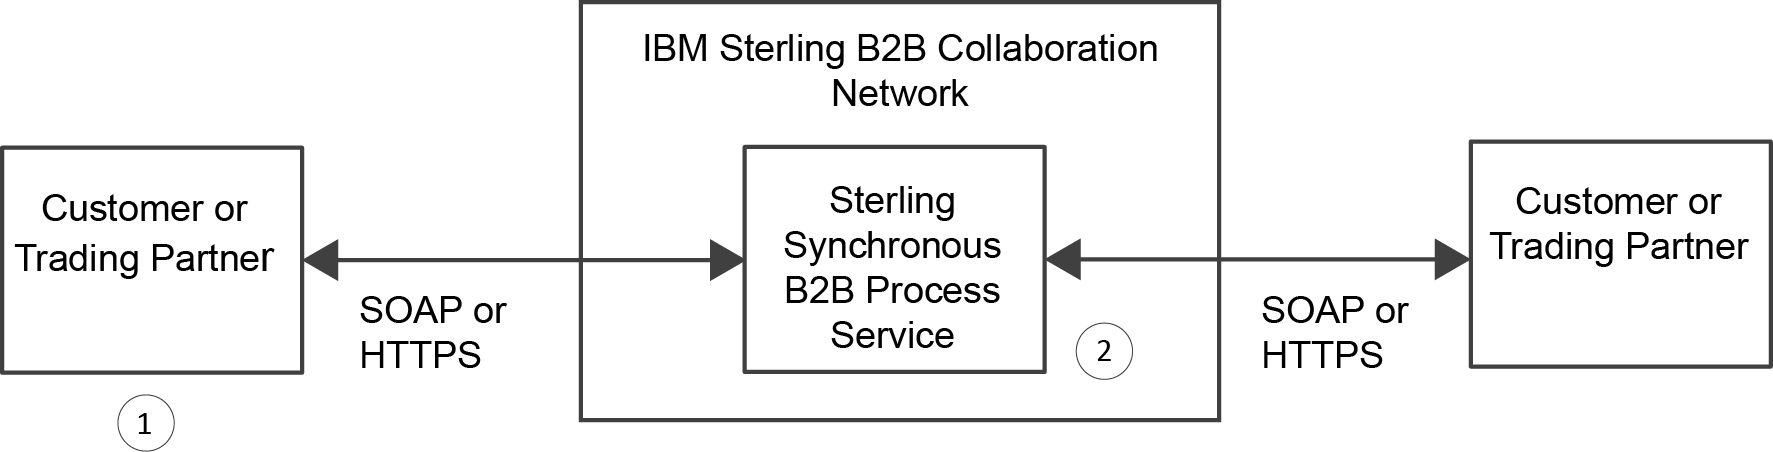 About The Ibm Sterling Synchronous B2b Process Service Flow Diagram Levels High Level Data For As Described